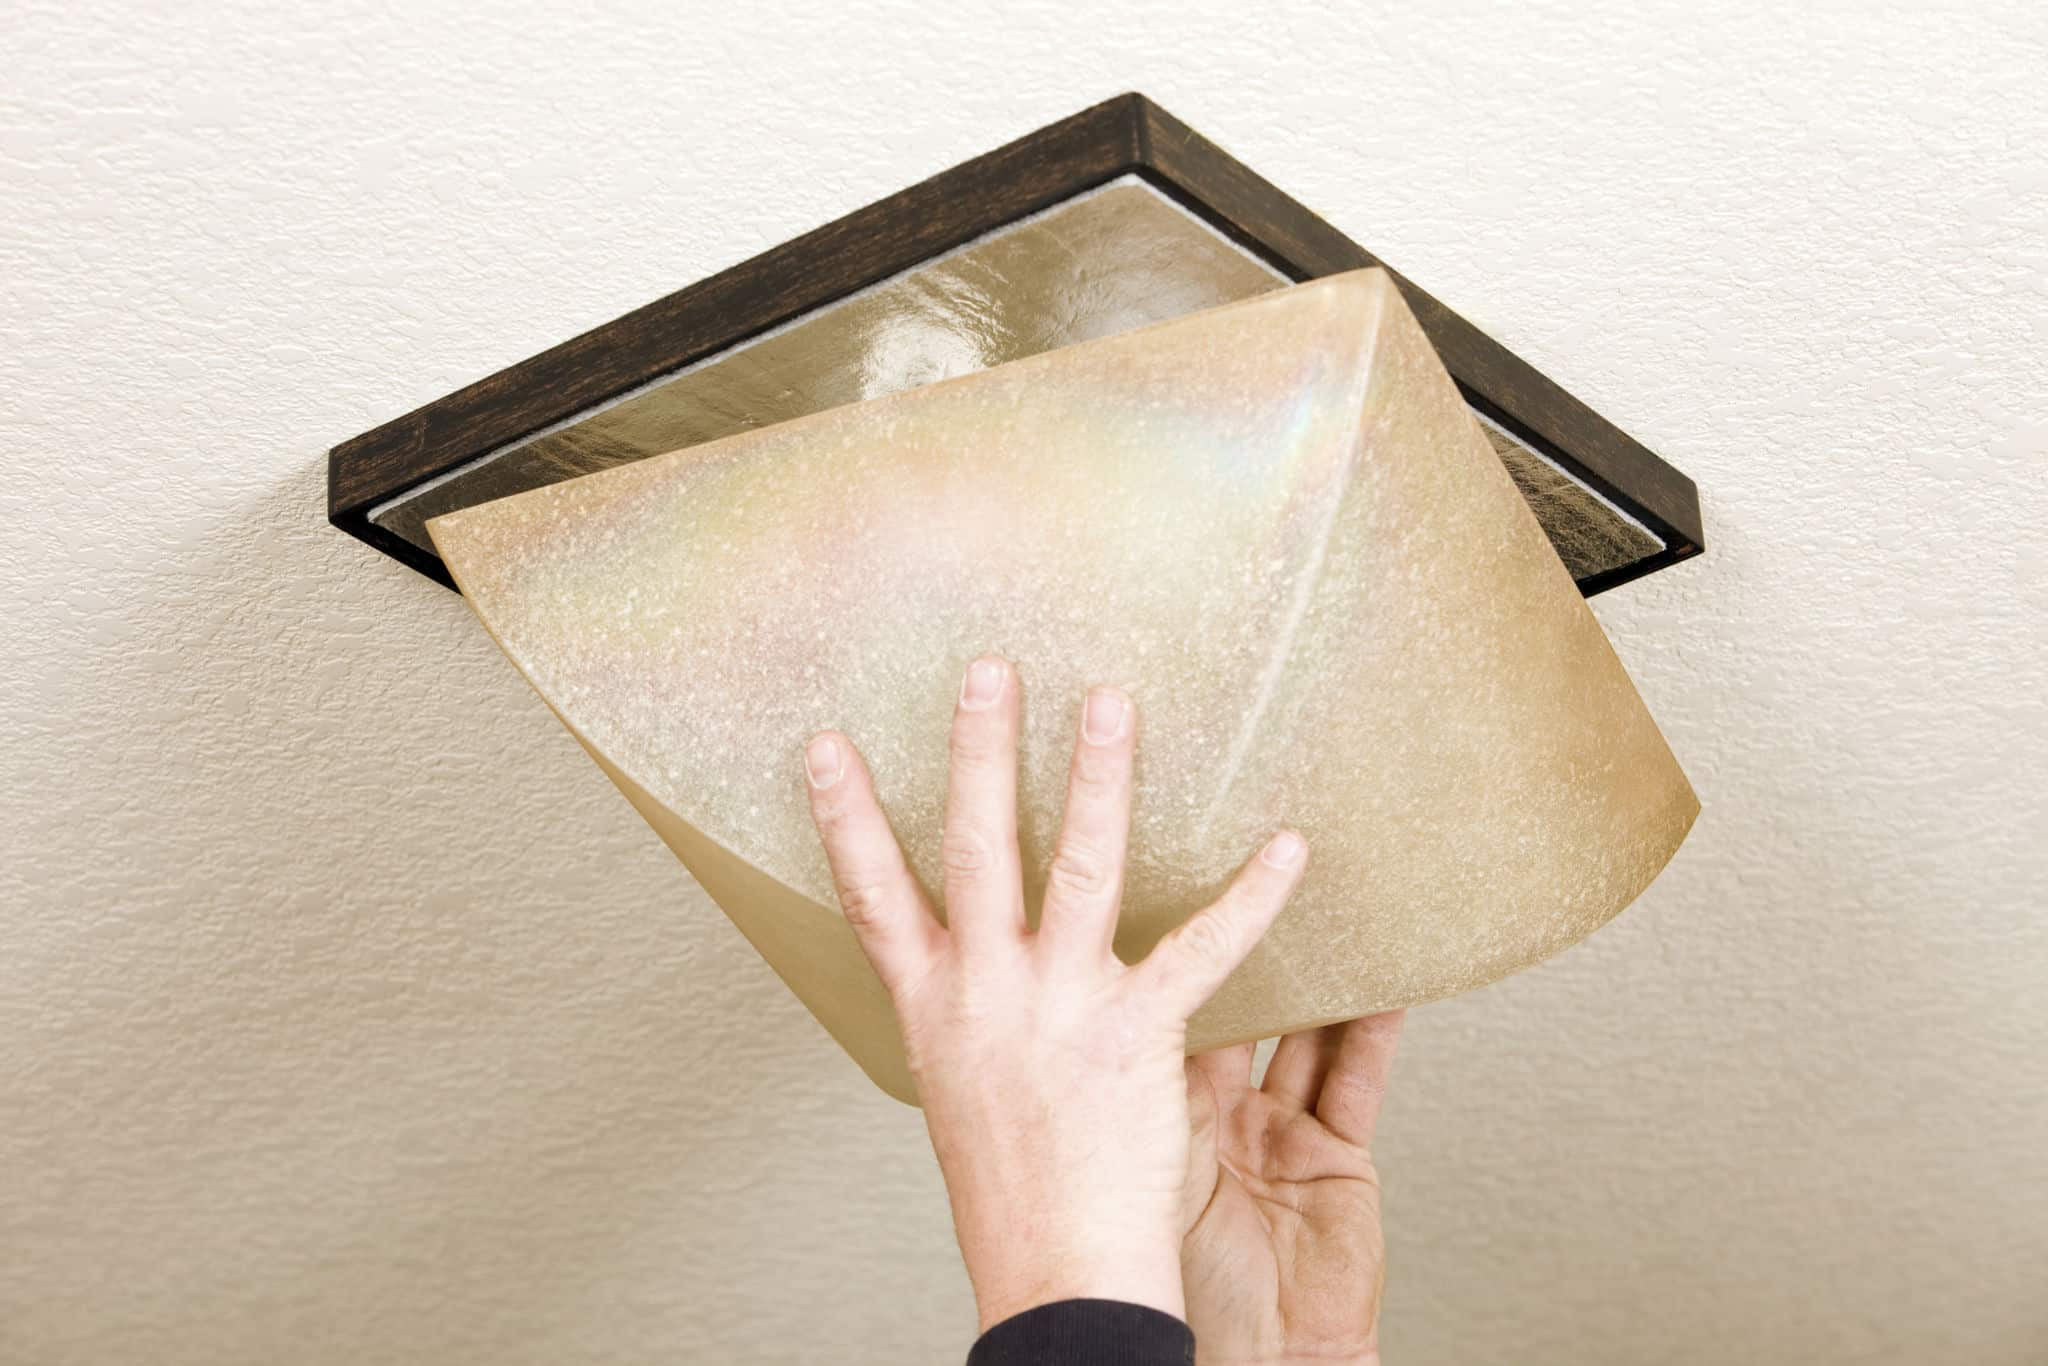 How to Remove Square Light Fixture Cover